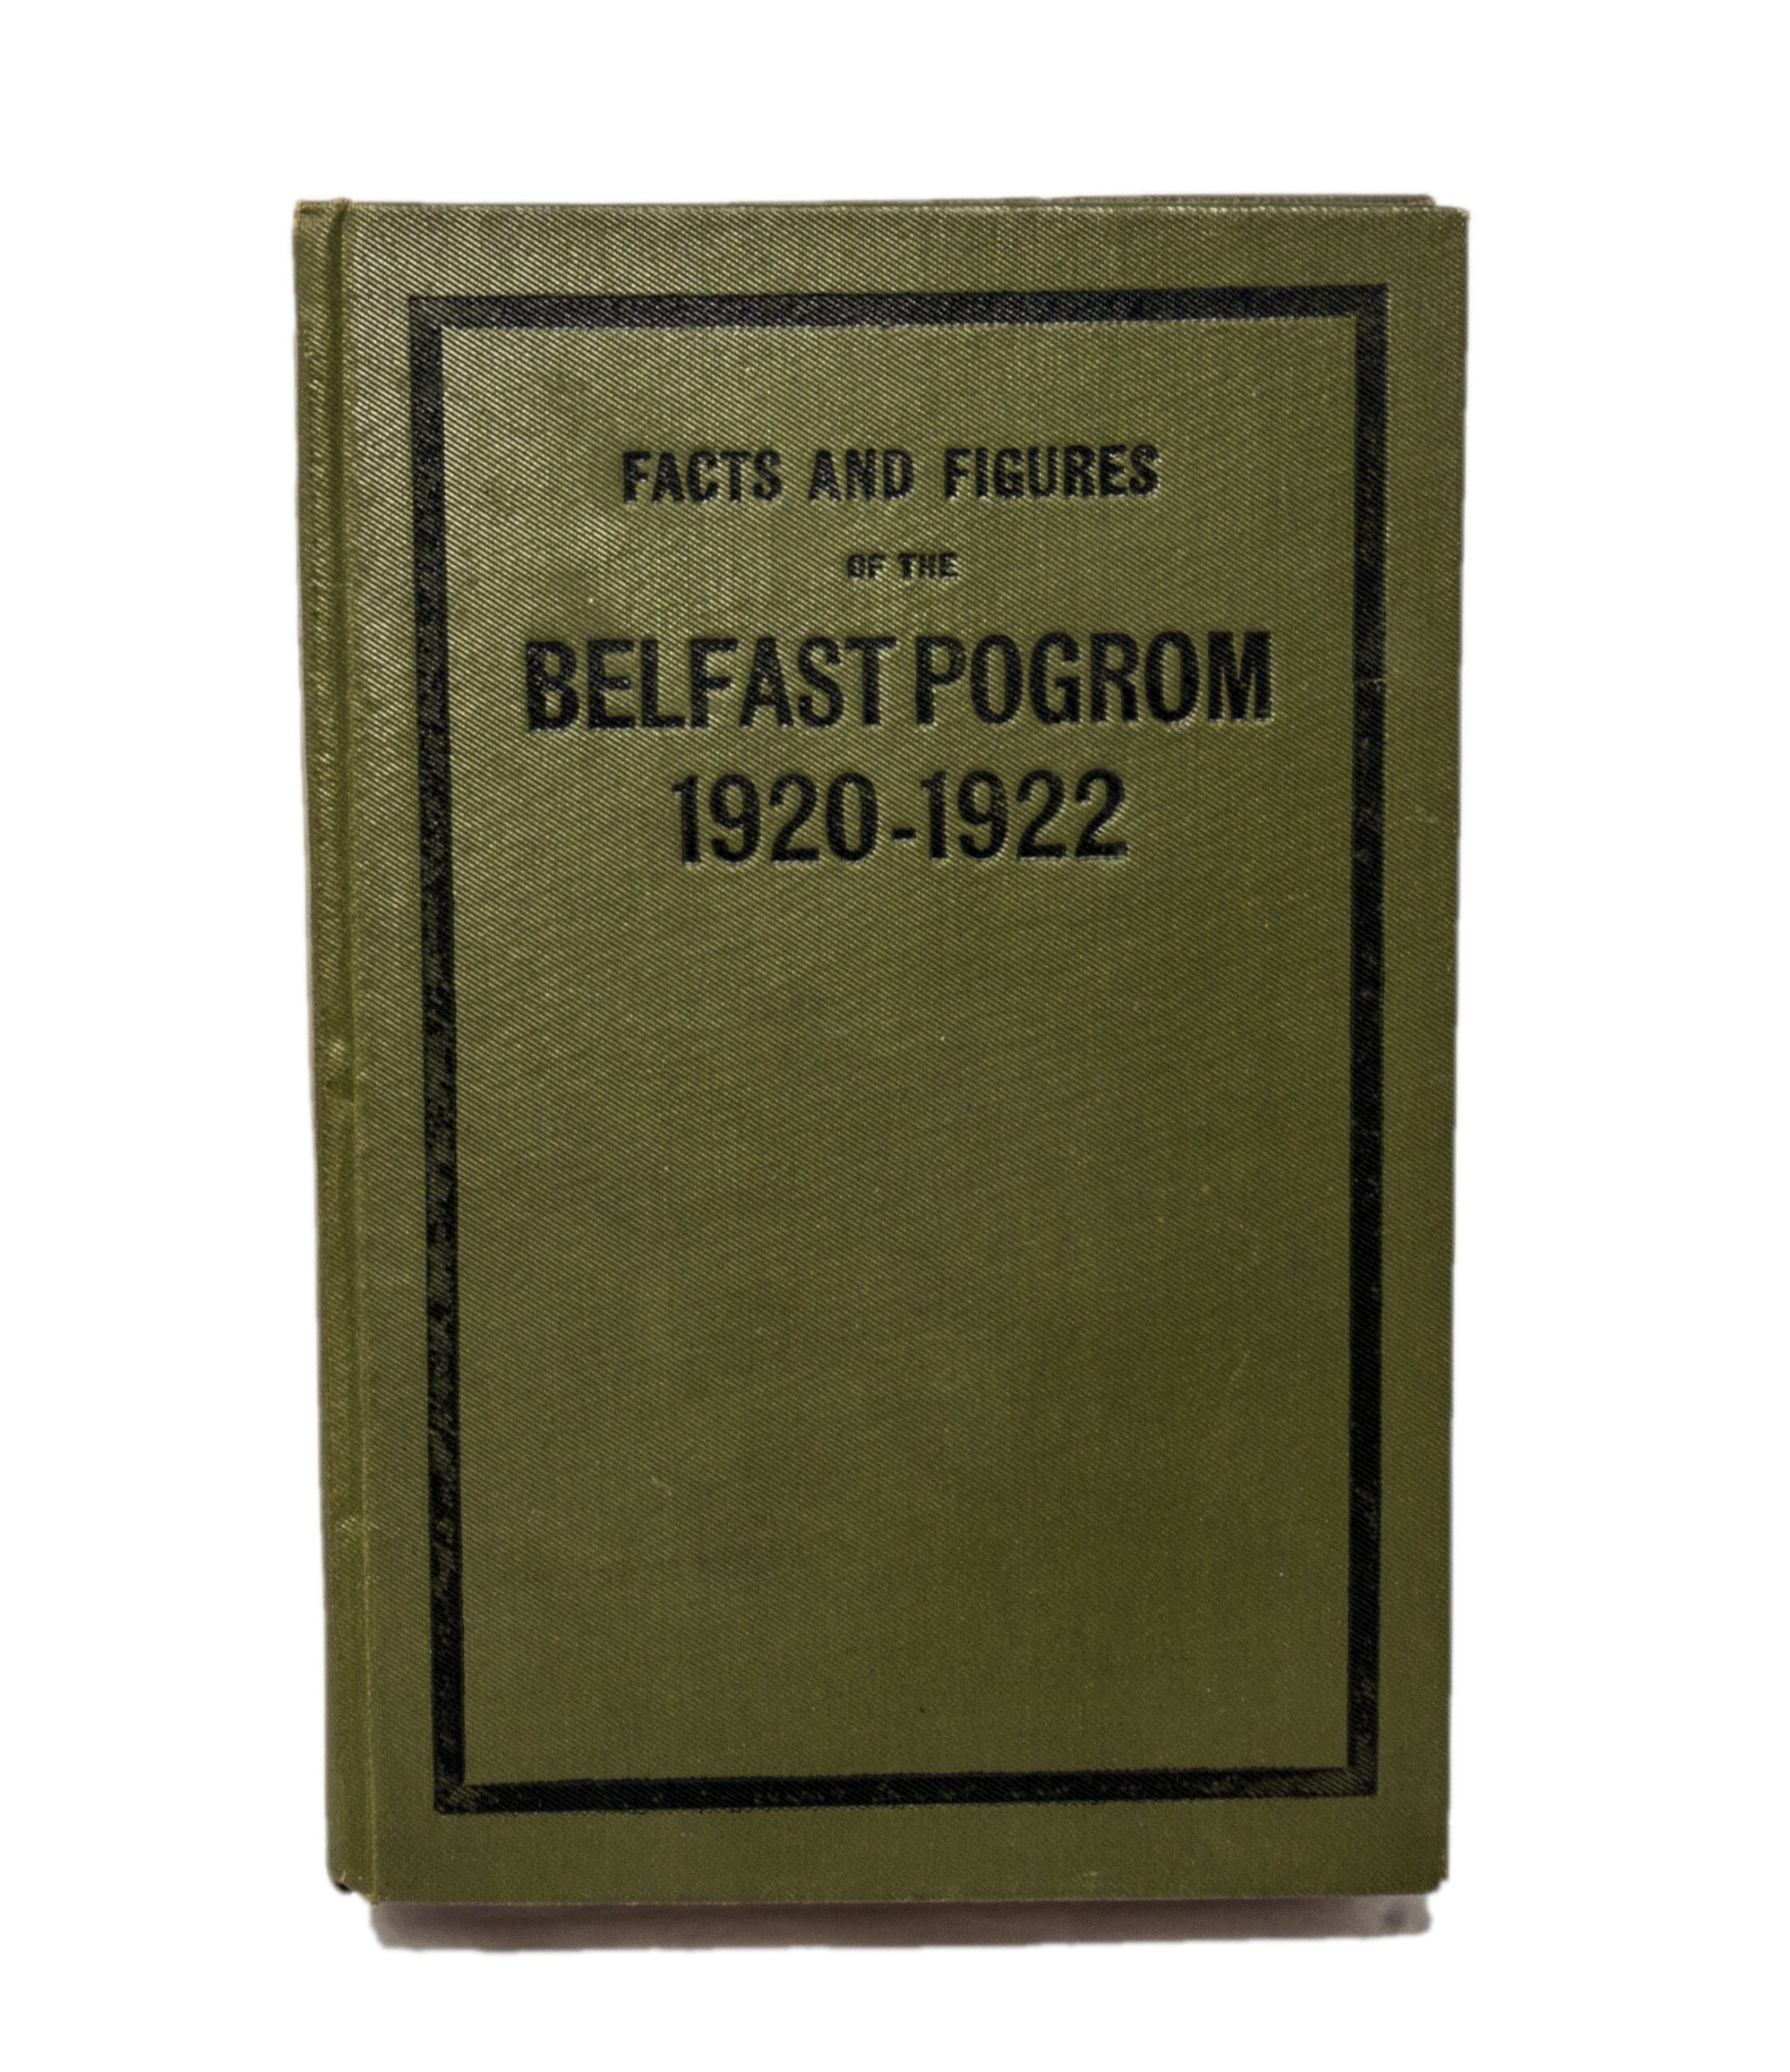 Book, Facts and Figures of the Belfast Pogrom, 1920-1922, ILC&LM Collection - Front